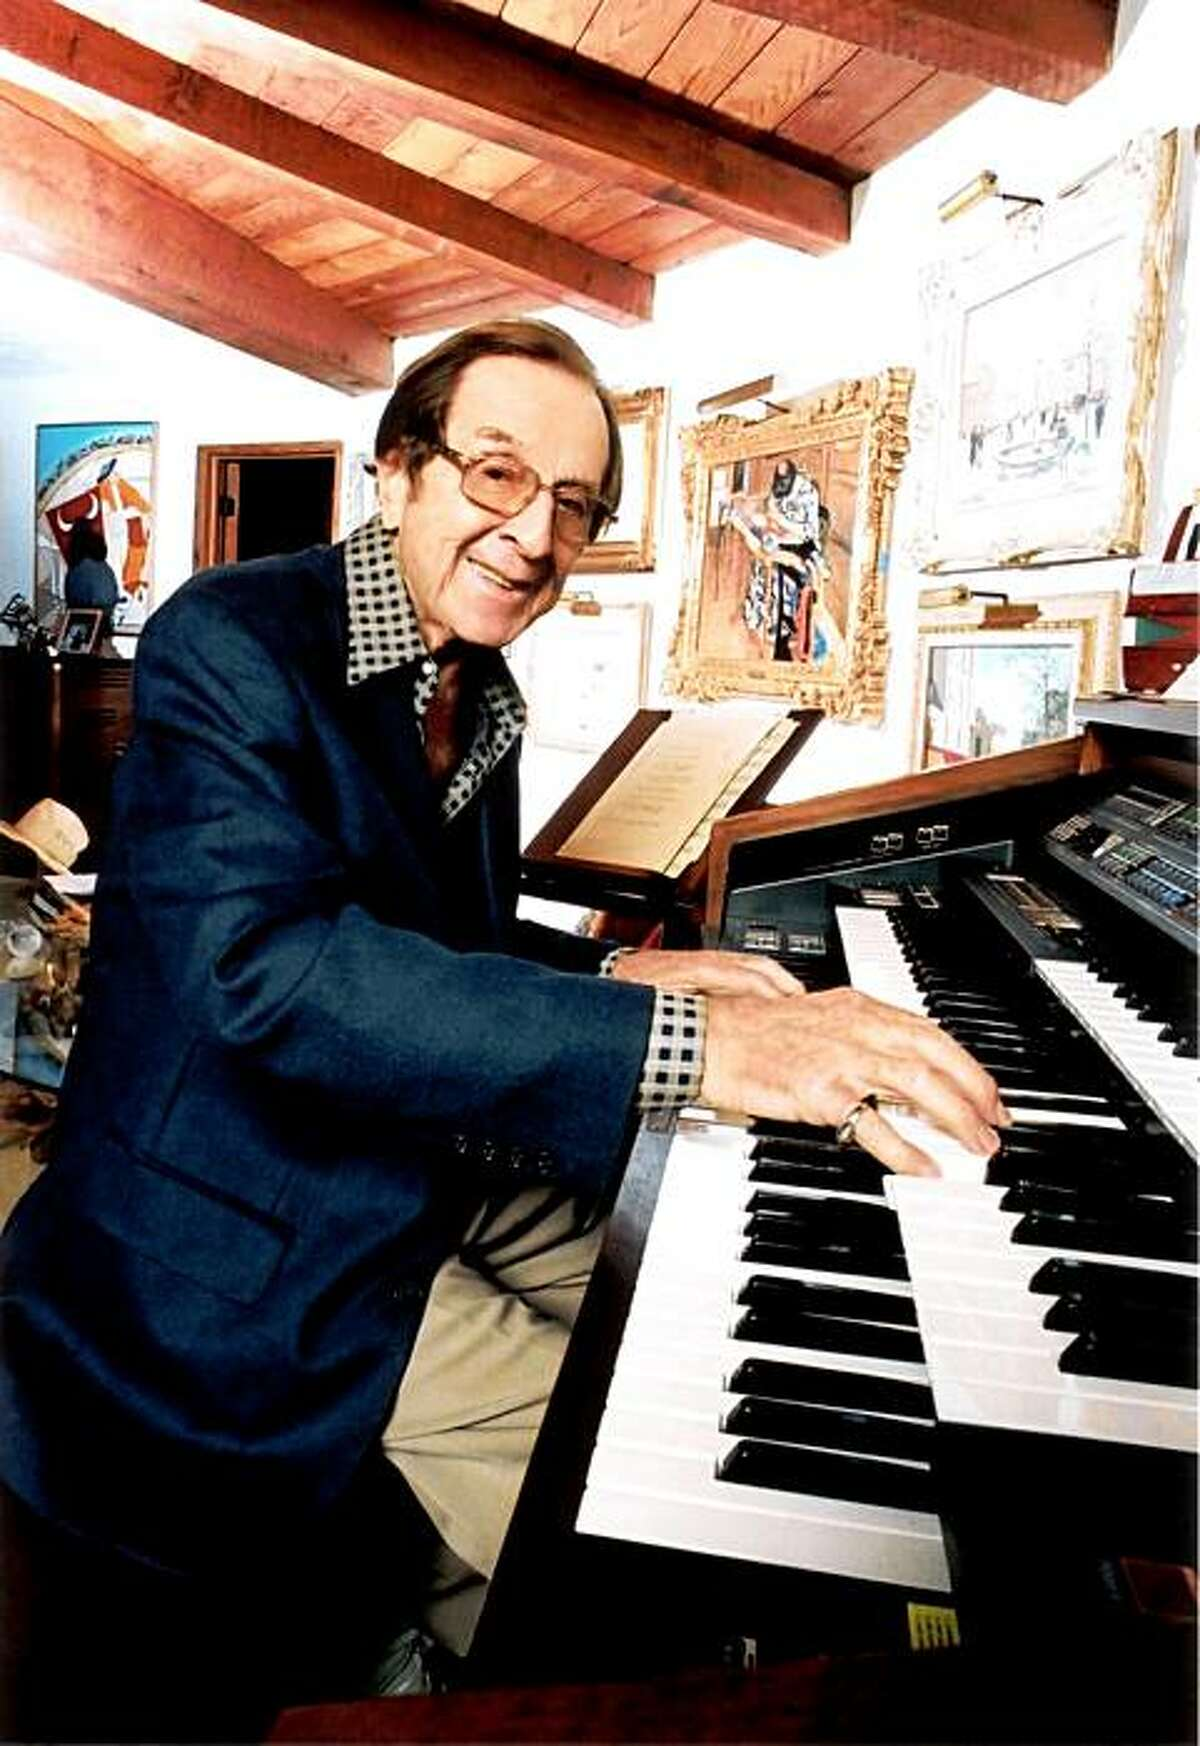 TIn this 2004 photo released by Johathan Wolfson shows Vic Mizzy at his home in the Bel Air area of Los Angeles. The Brooklyn-born songwriter who wrote the catchy theme songs to The Addams Family and Green Acres, but also dozens of #1 pop hits has passed away in Los Angeles Saturday, Oct. 17, 2009. He was 93. (AP Photo/Micah Smith) **NO SALES**